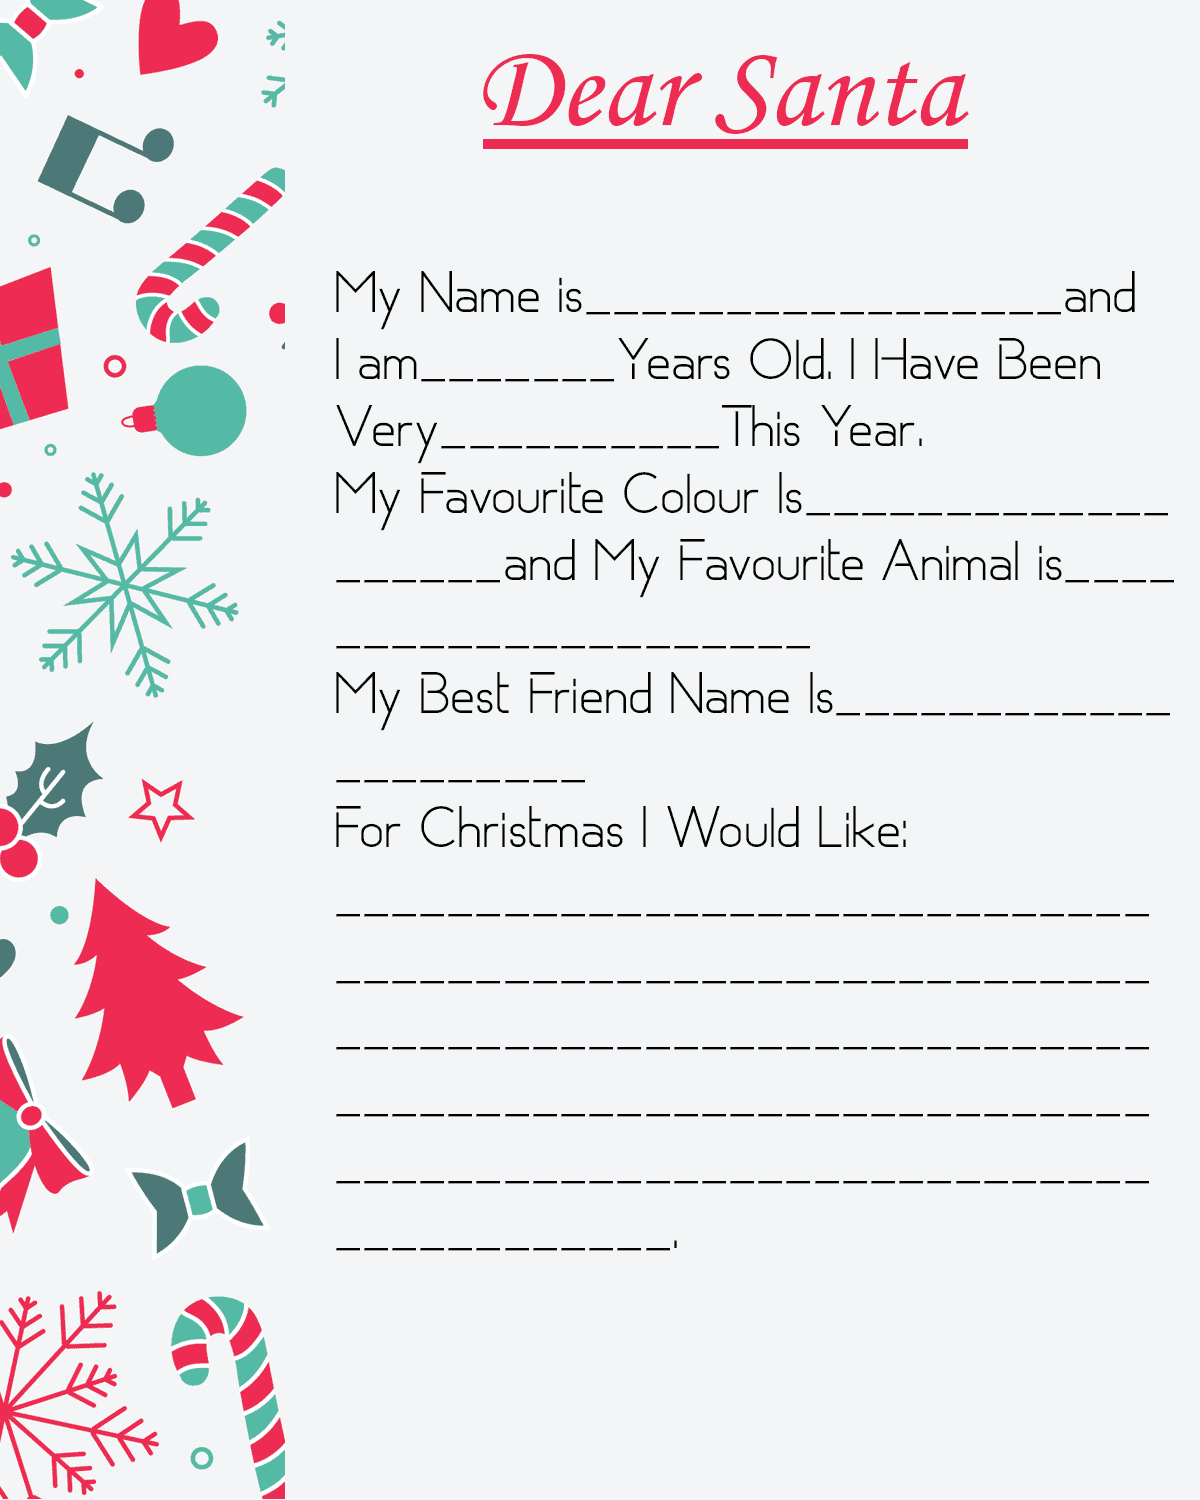 Customized Letter To Santa